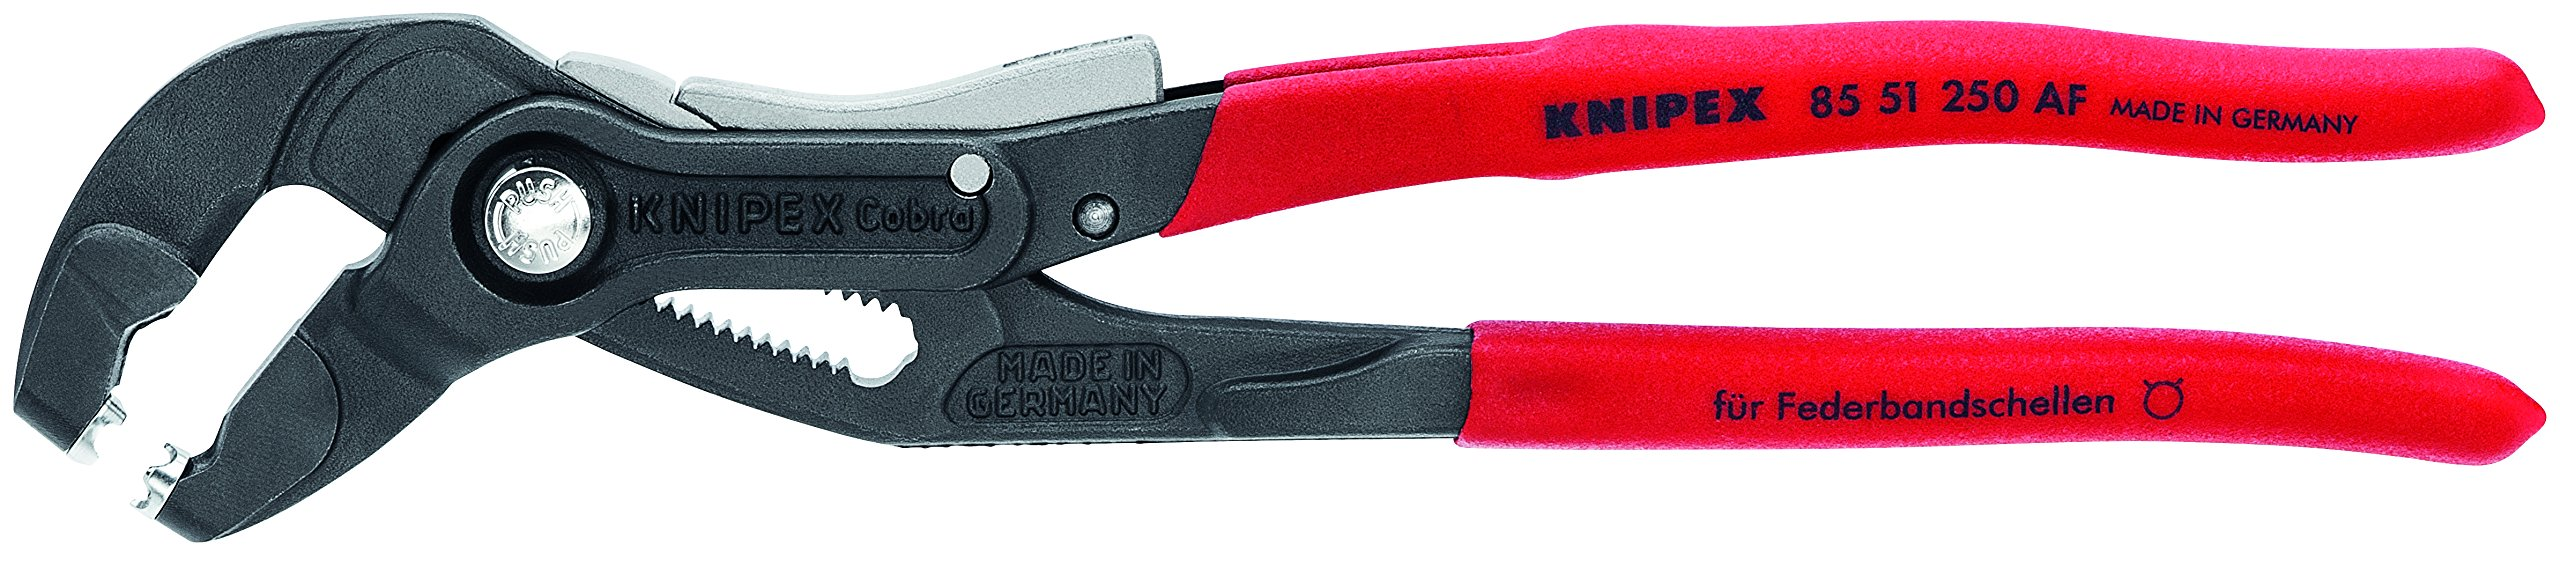 Knipex Tools 85 51 250 AF 10'' Hose Clamp Pliers with Locking Device by KNIPEX Tools